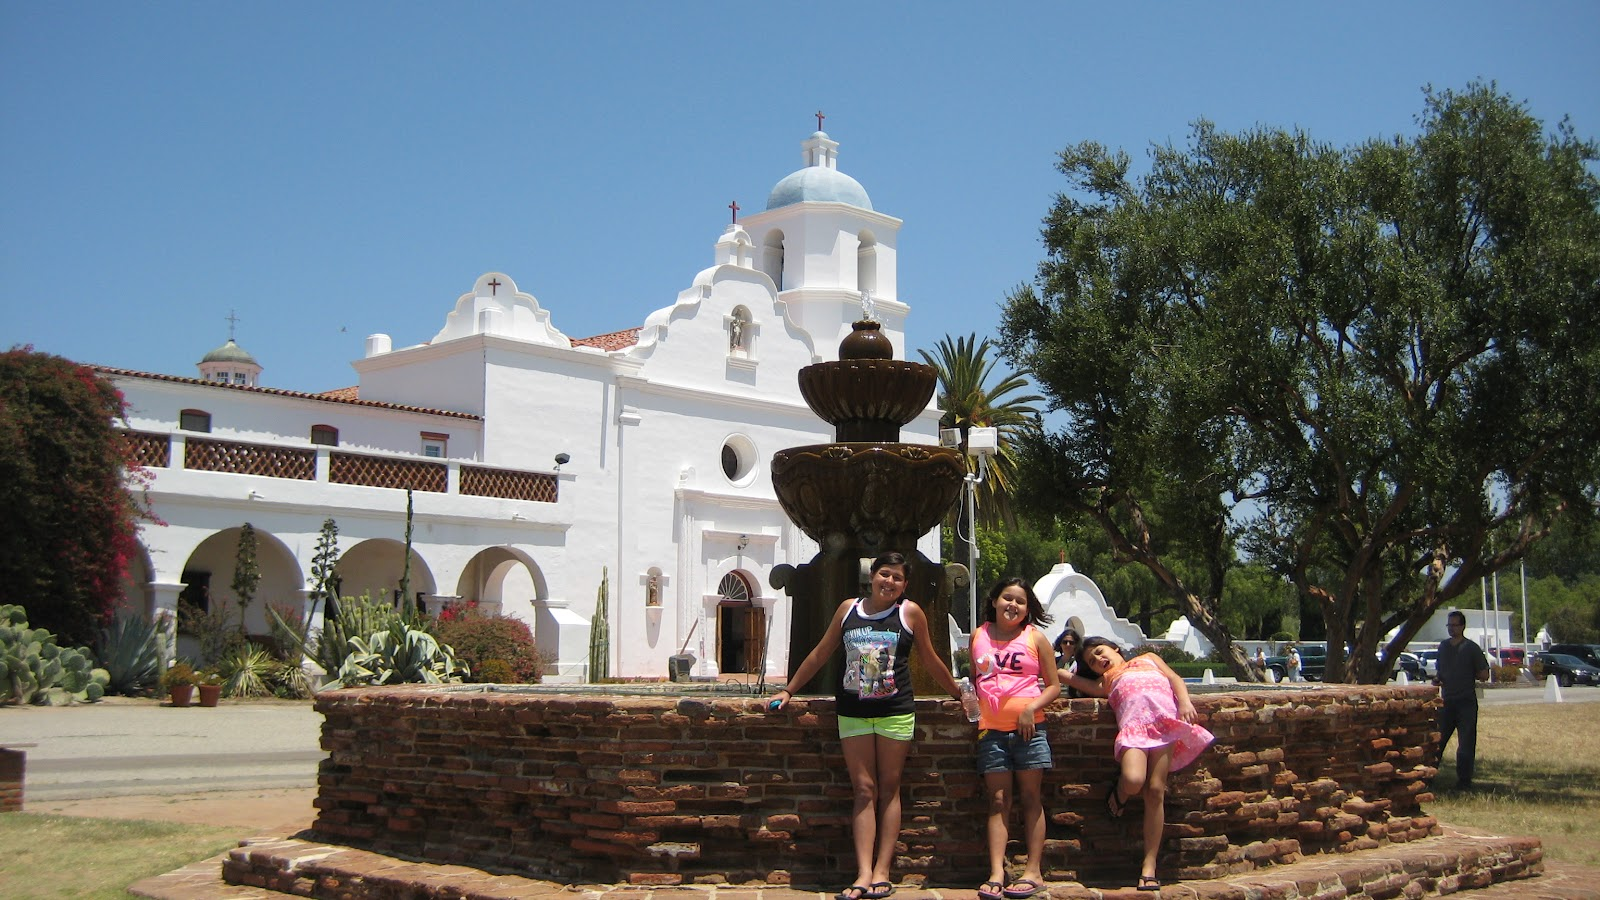 visiting mission san luis rey in oceanside inspire travelocity com